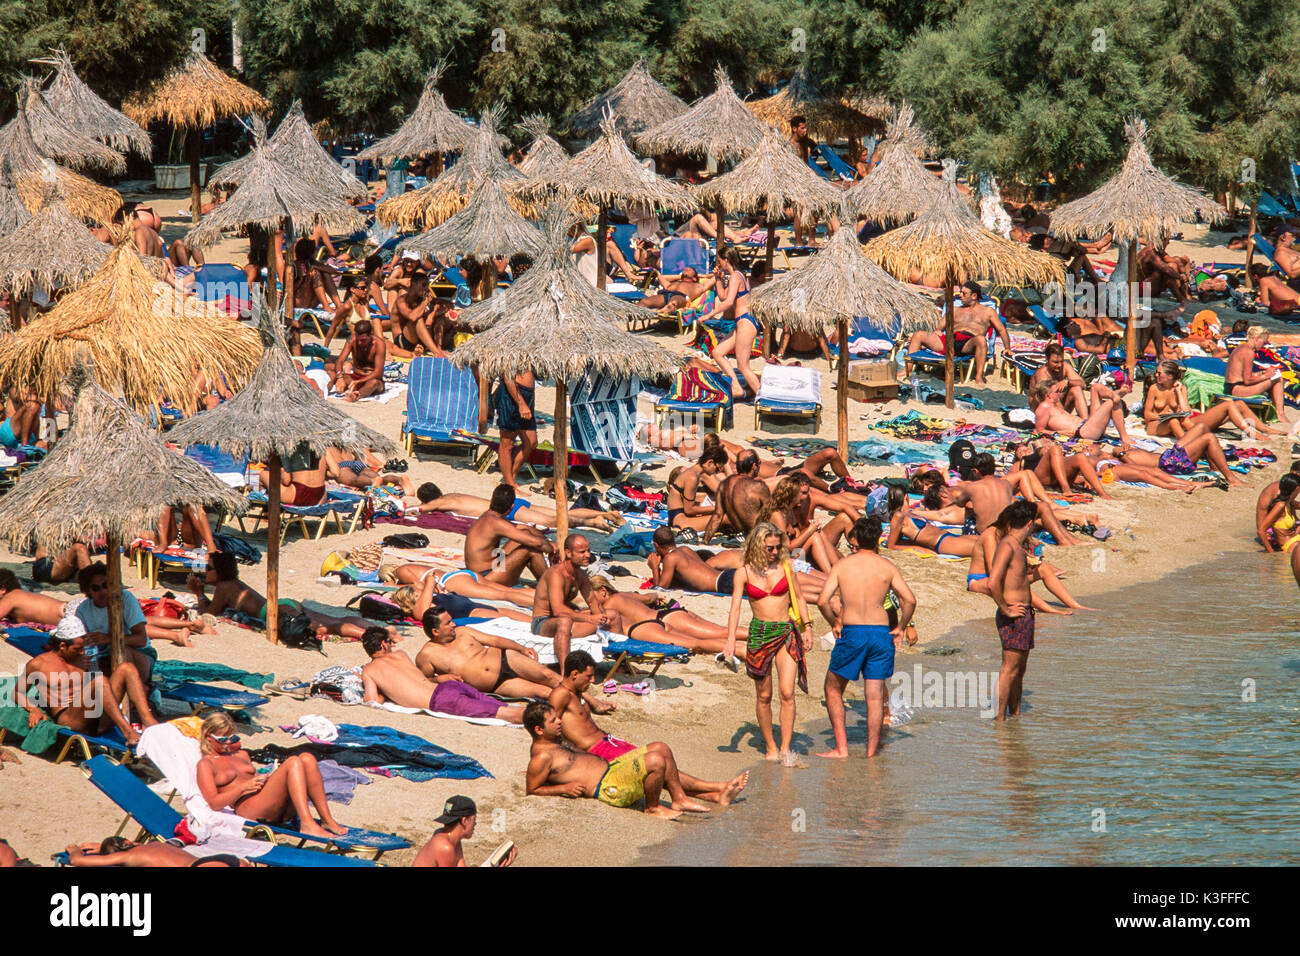 Congested holiday beach, Mykonos, Greece - Stock Image